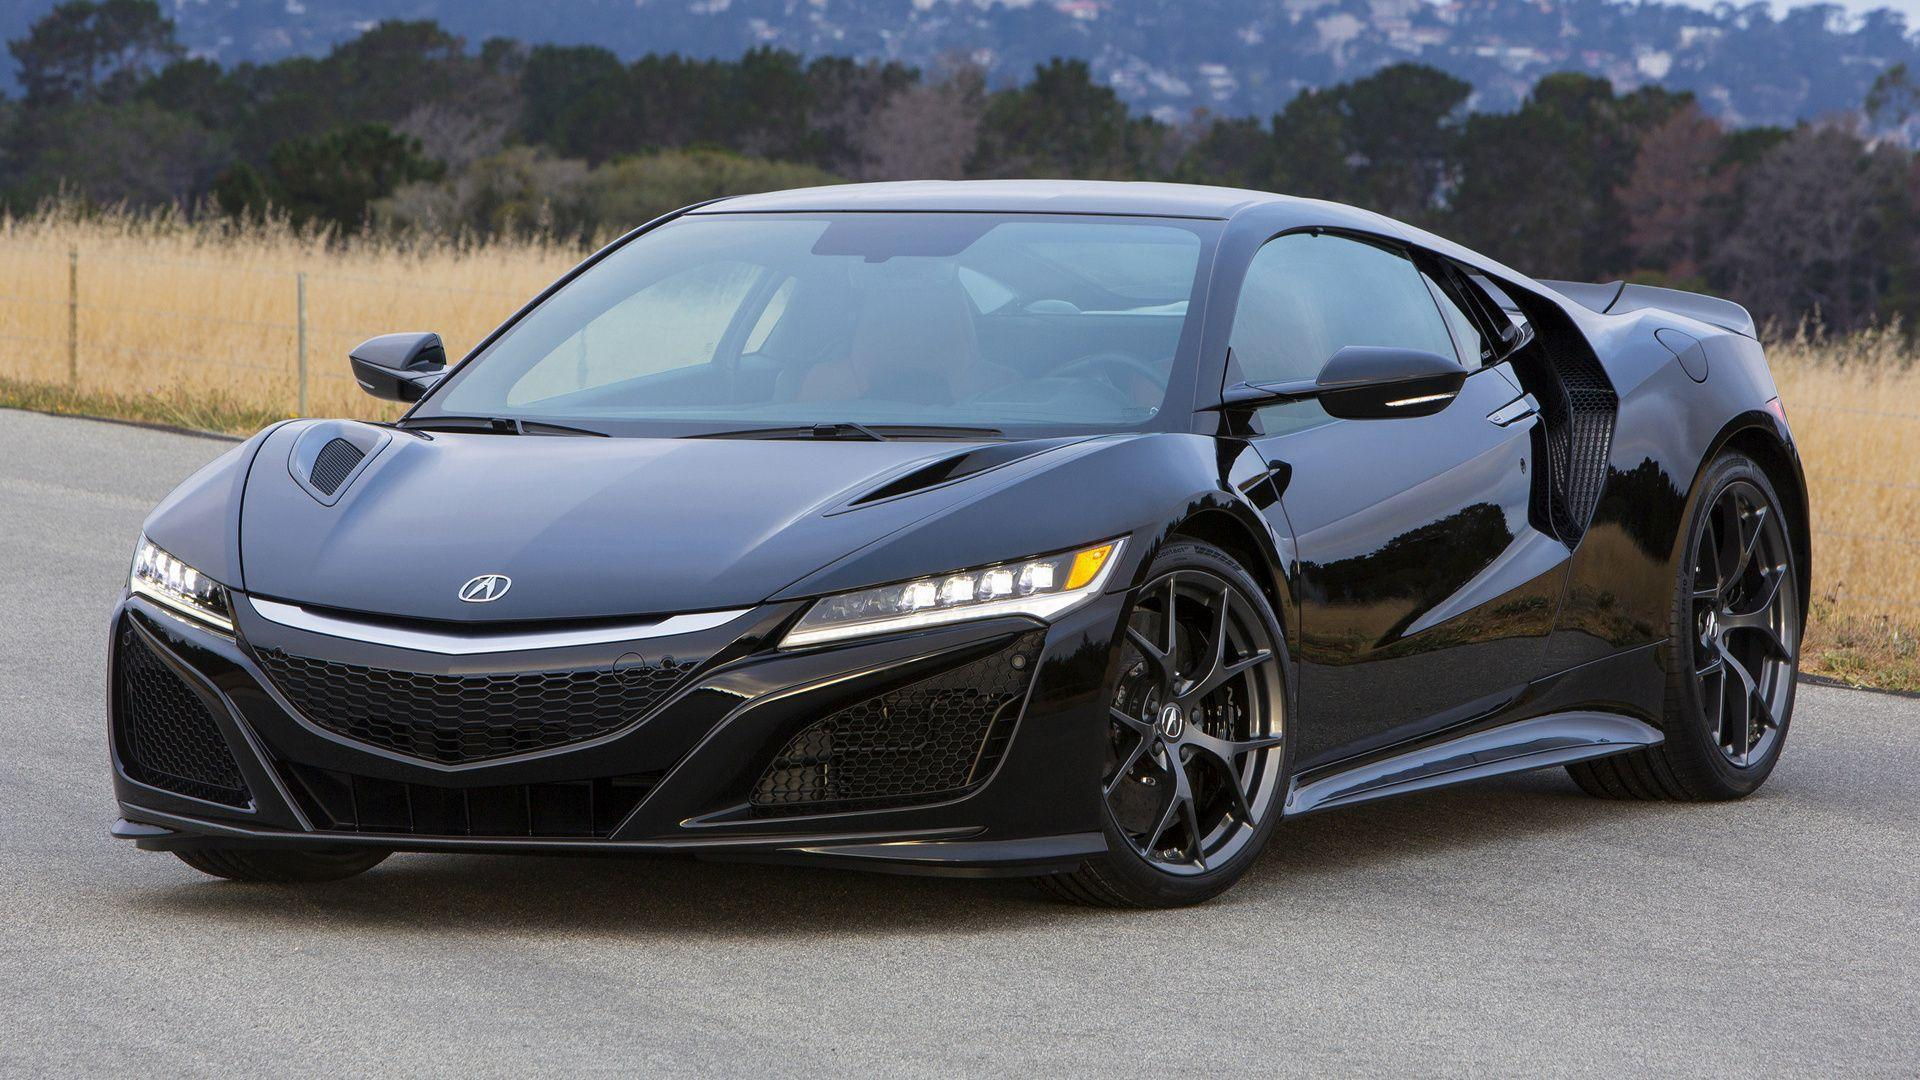 Acura NSX (2017) Wallpapers and HD Images - Car Pixel